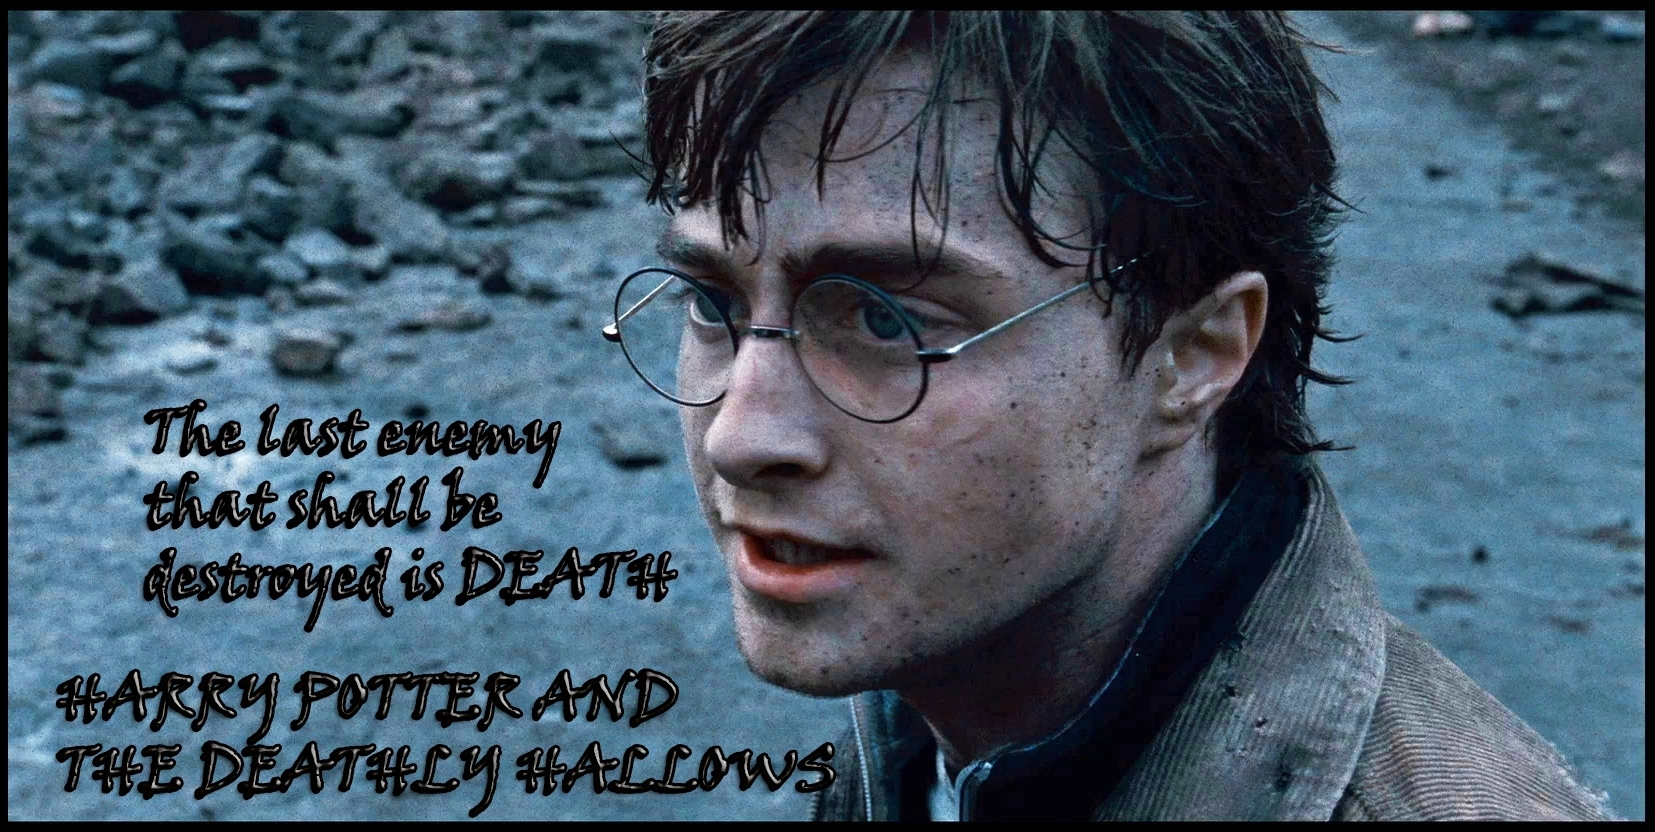 Harry Potter - Harry Potter In Deathly Hallows Part 2 - HD Wallpaper